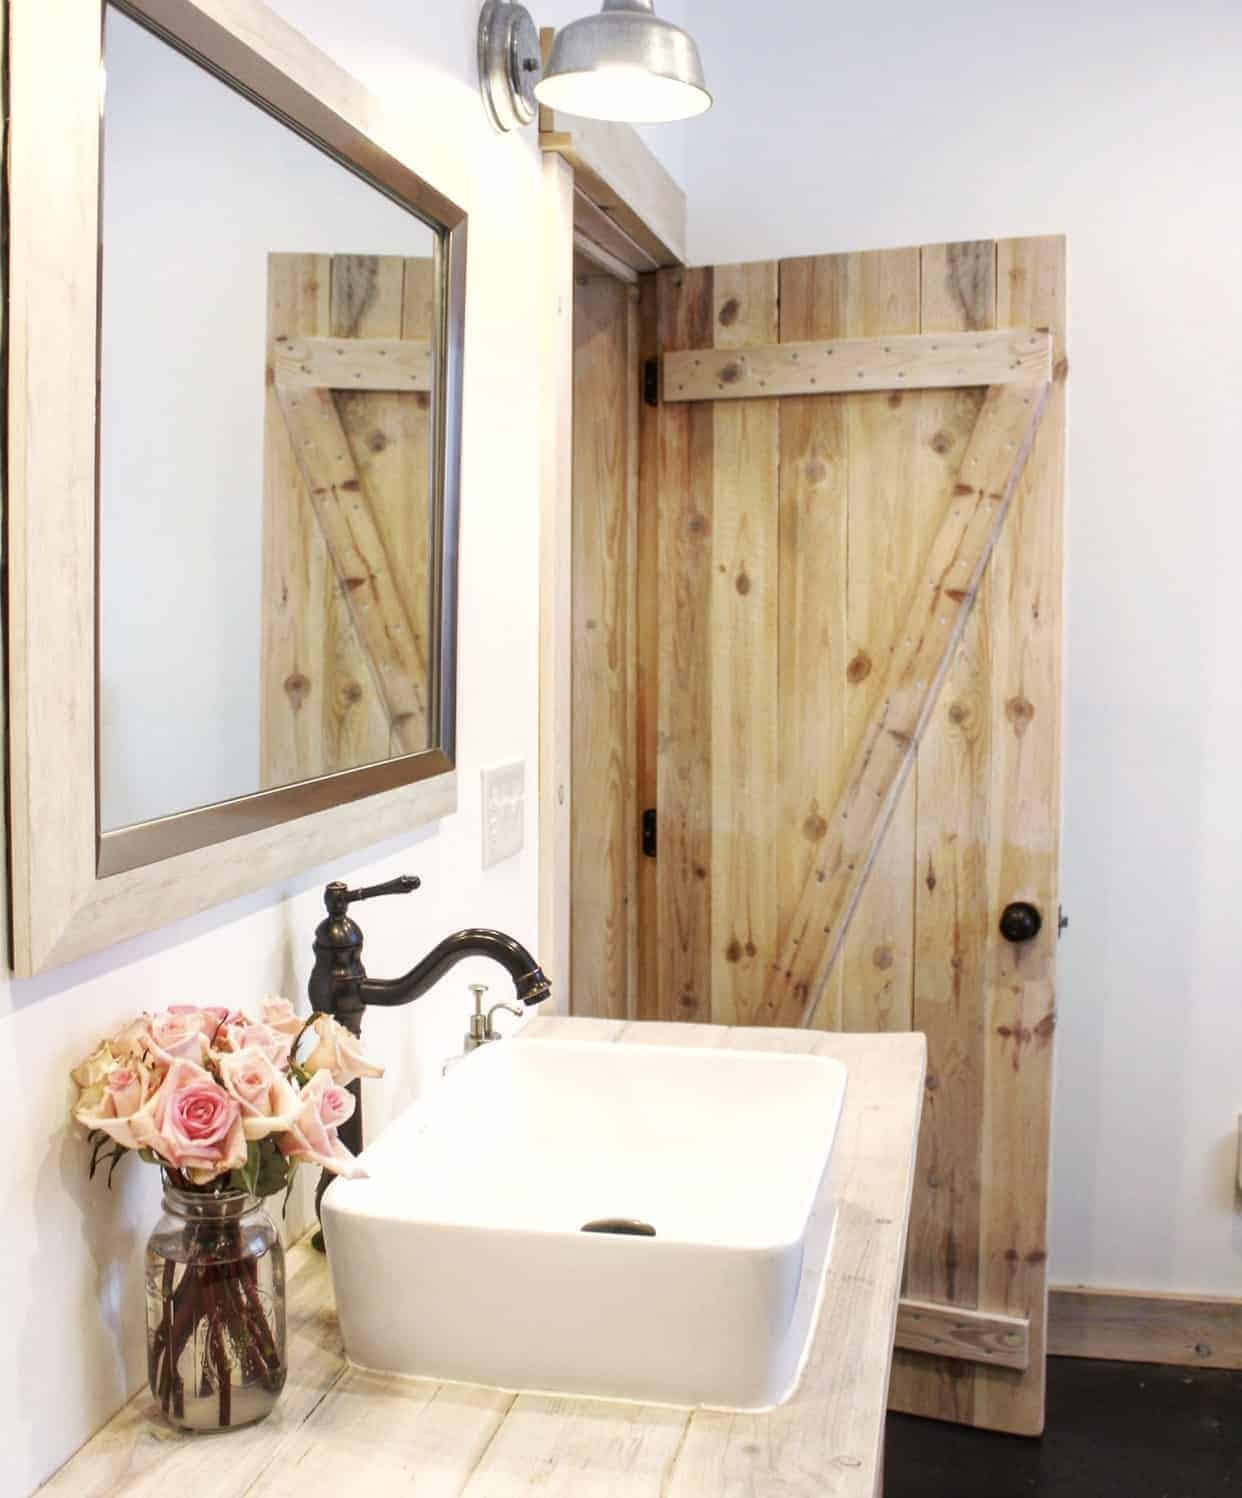 Farmhouse style bathroom with a wooden barn door, pendant barn style lighting, large farmhouse basin sink above wooden countertops with a vase of pink roses on the counter